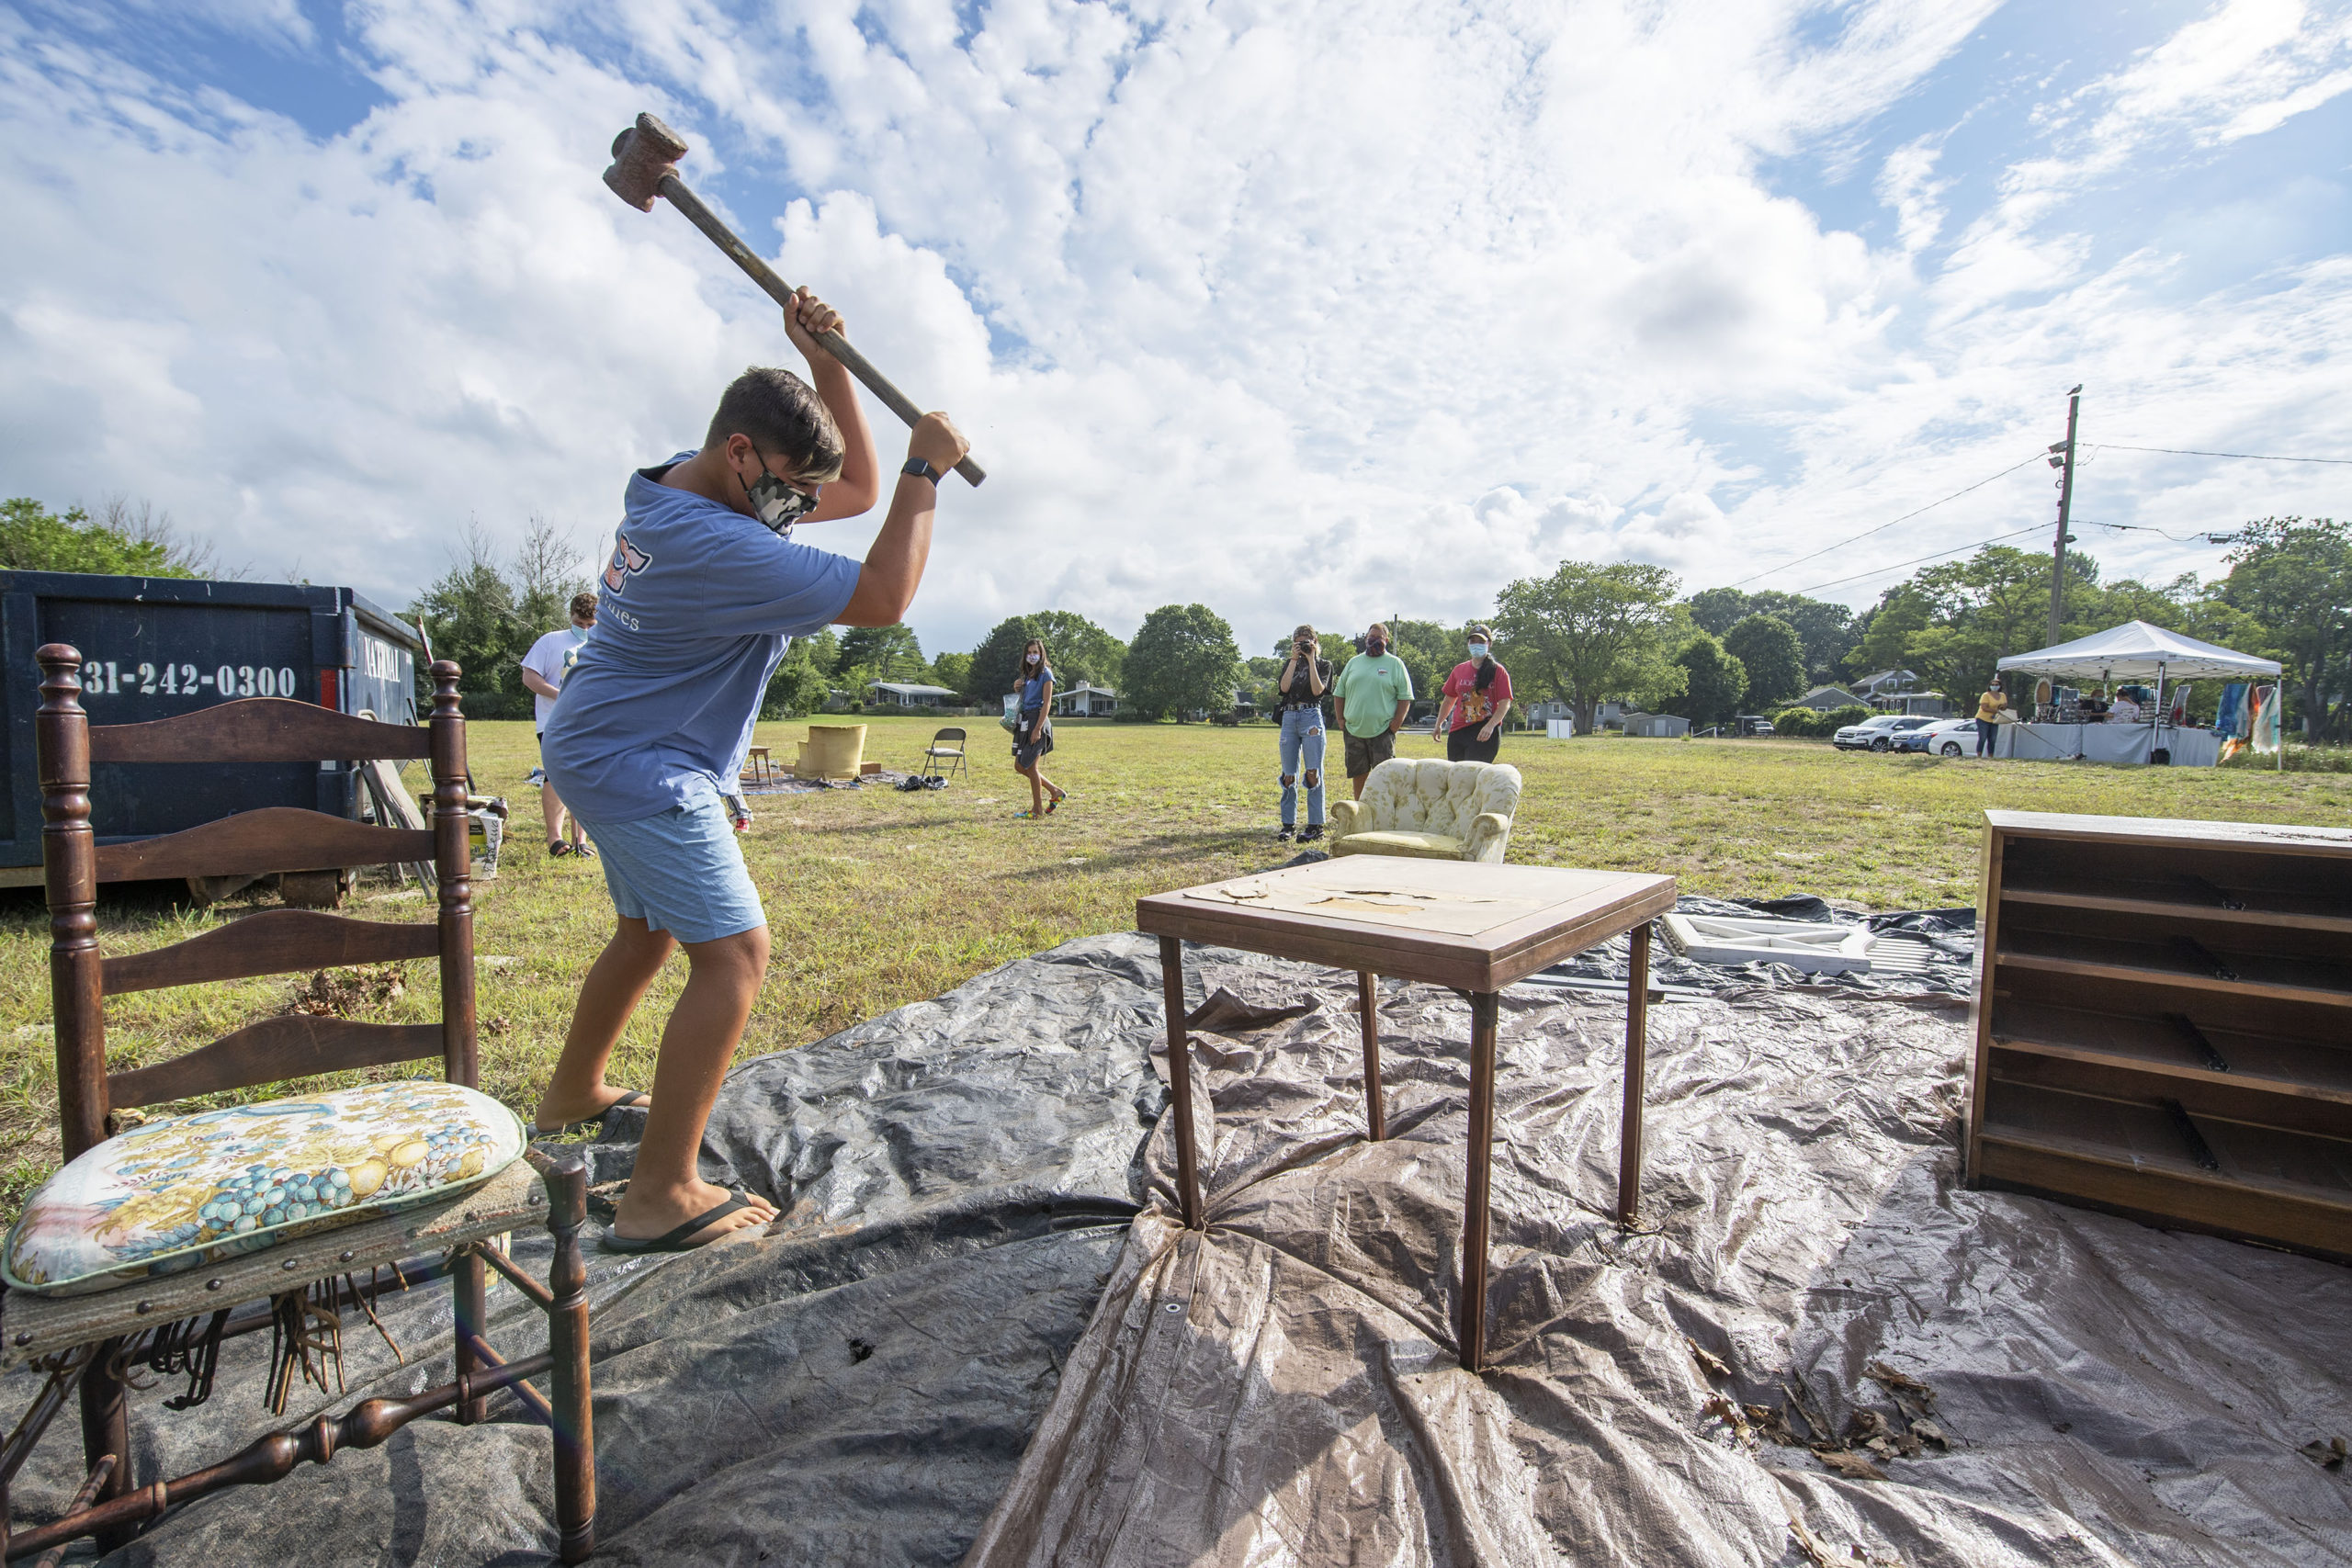 Cole Warren takes a sledgehammer to a card table during the Rage for Canines fundraiser that took place at Havens Beach on Friday evening.     MICHAEL HELLER